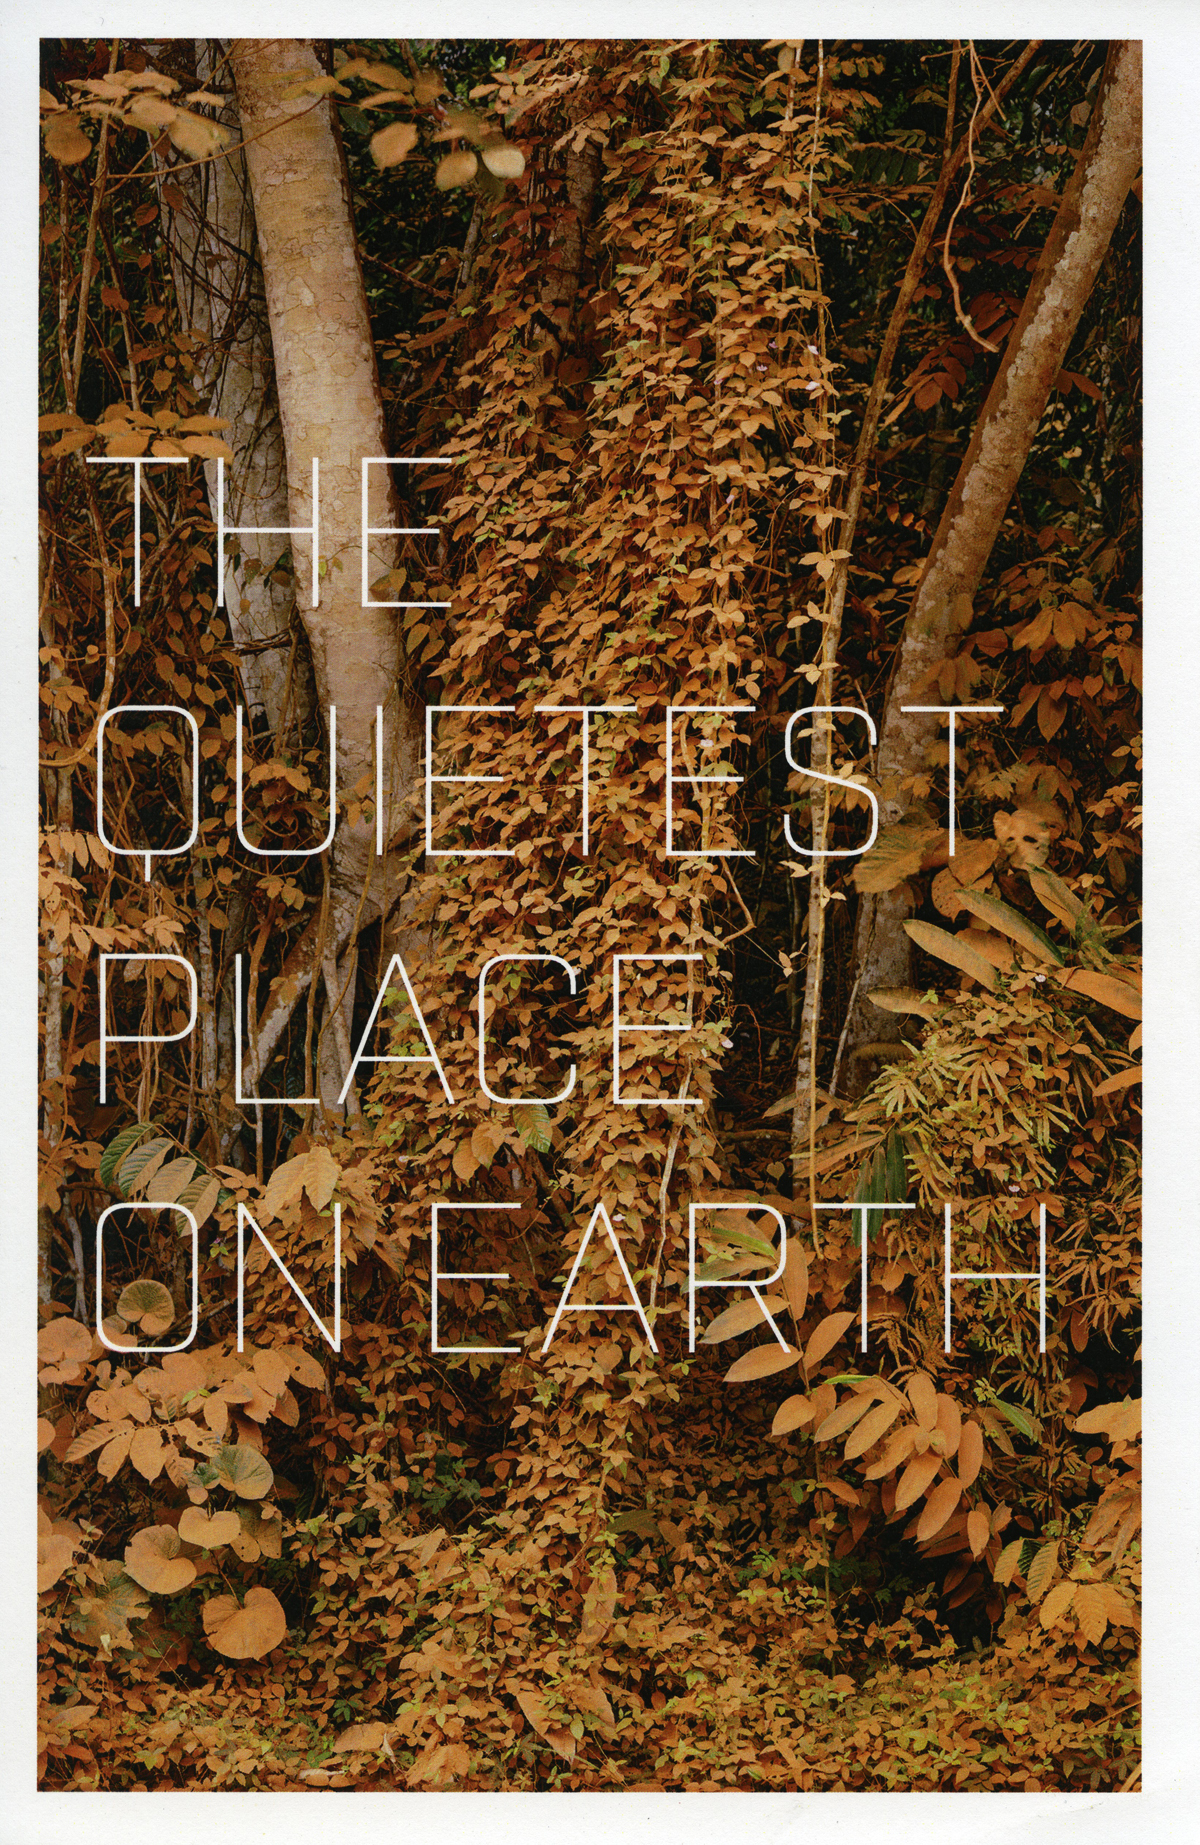 QuietestPlace